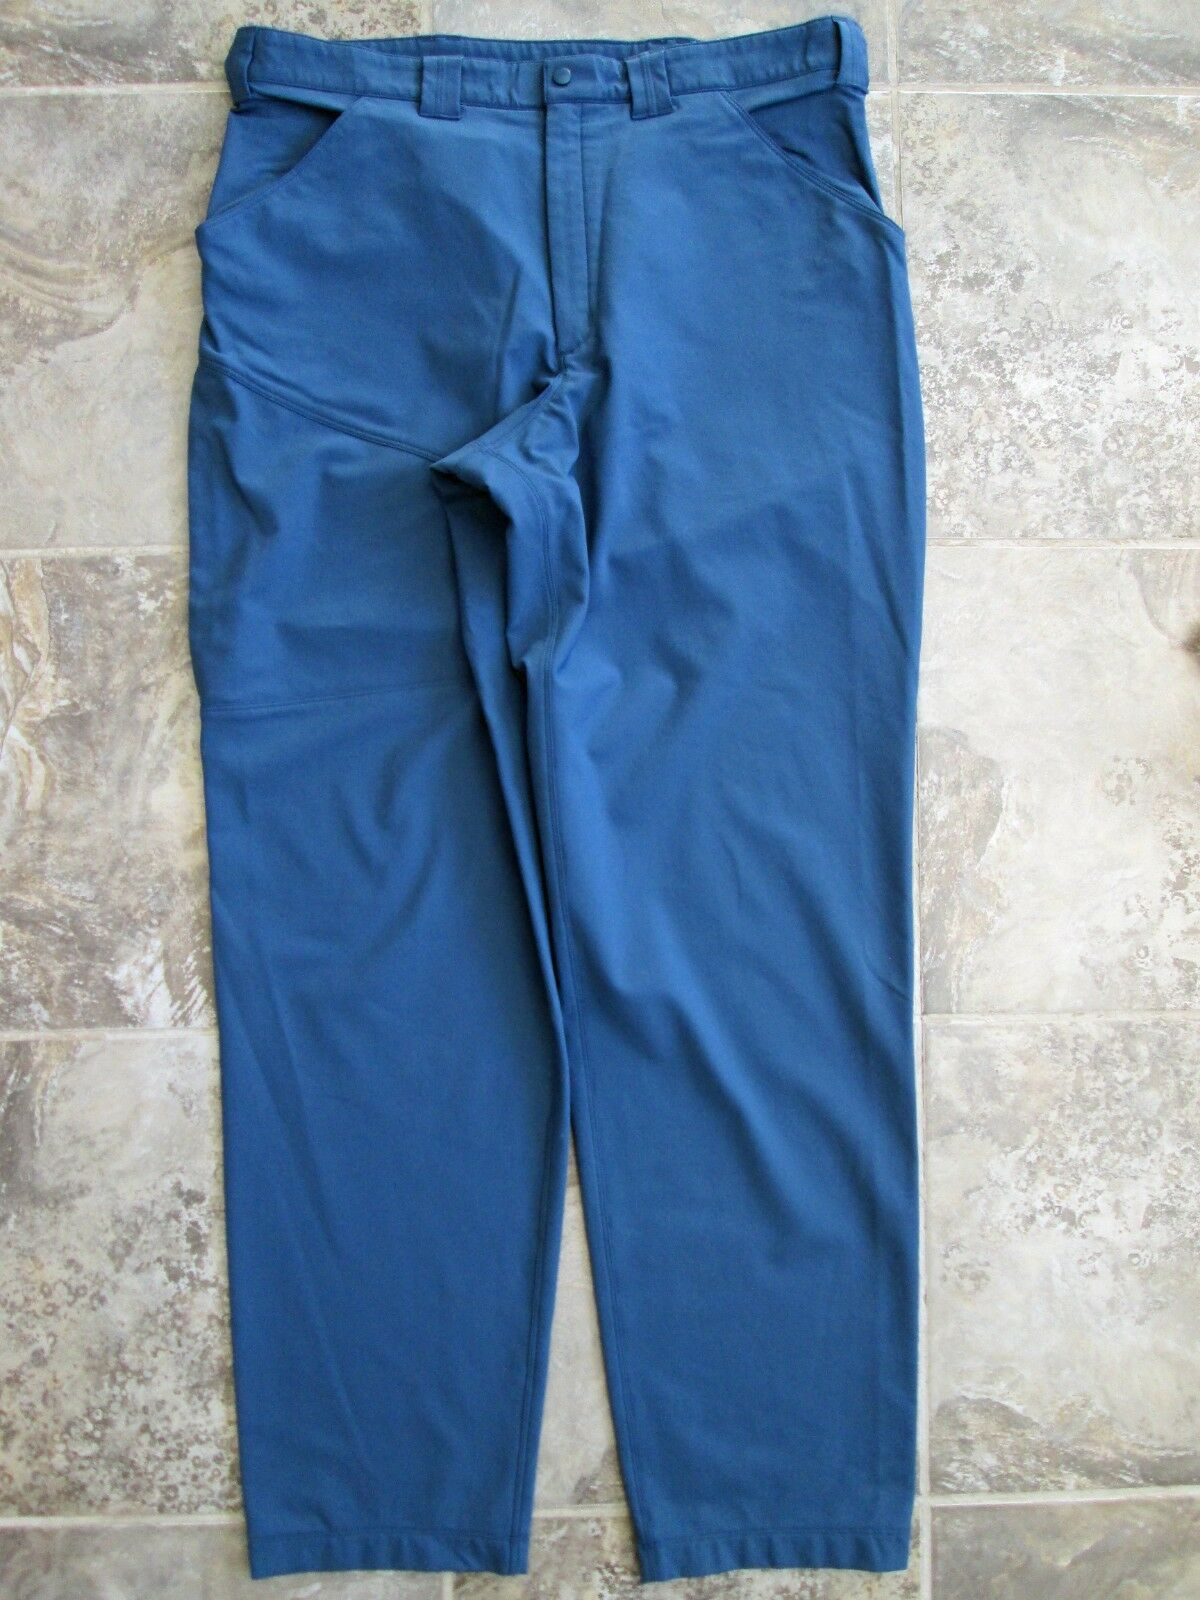 Arcteryx Men's Large Pants Sport Climb Hike Outdoor bluee Nylon Polyester Stretch